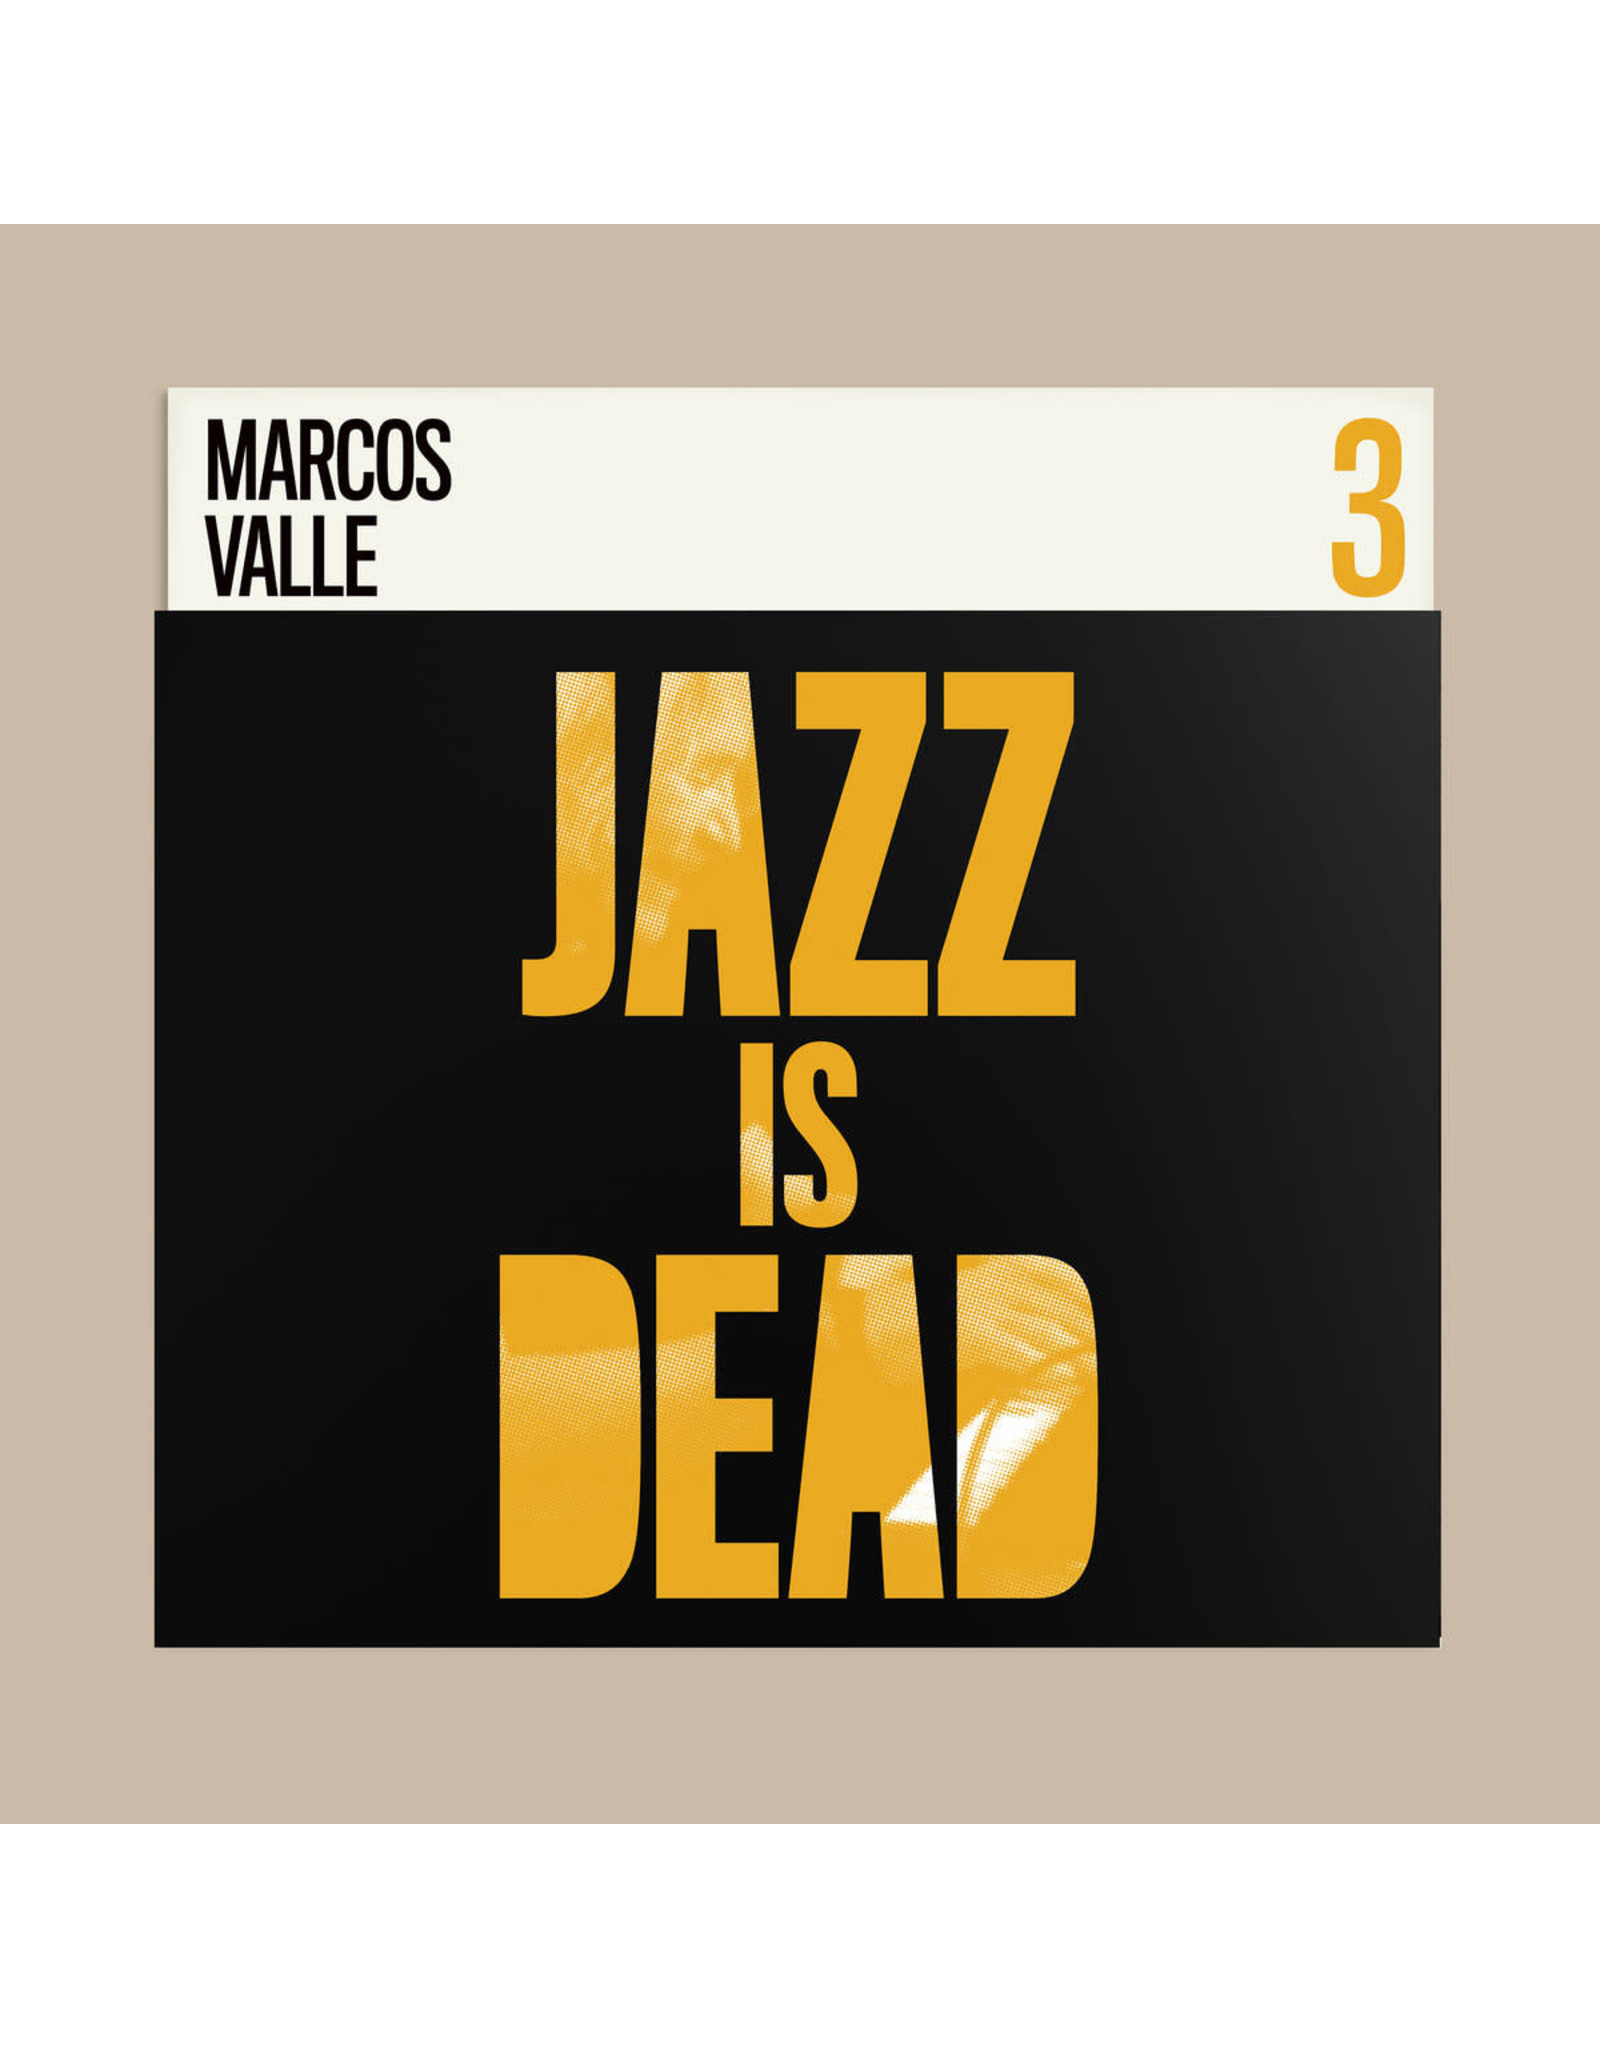 New Vinyl Adrian Younge & Ali Shaheed Muhammad - Jazz Is Dead 3: Marcos Valle LP